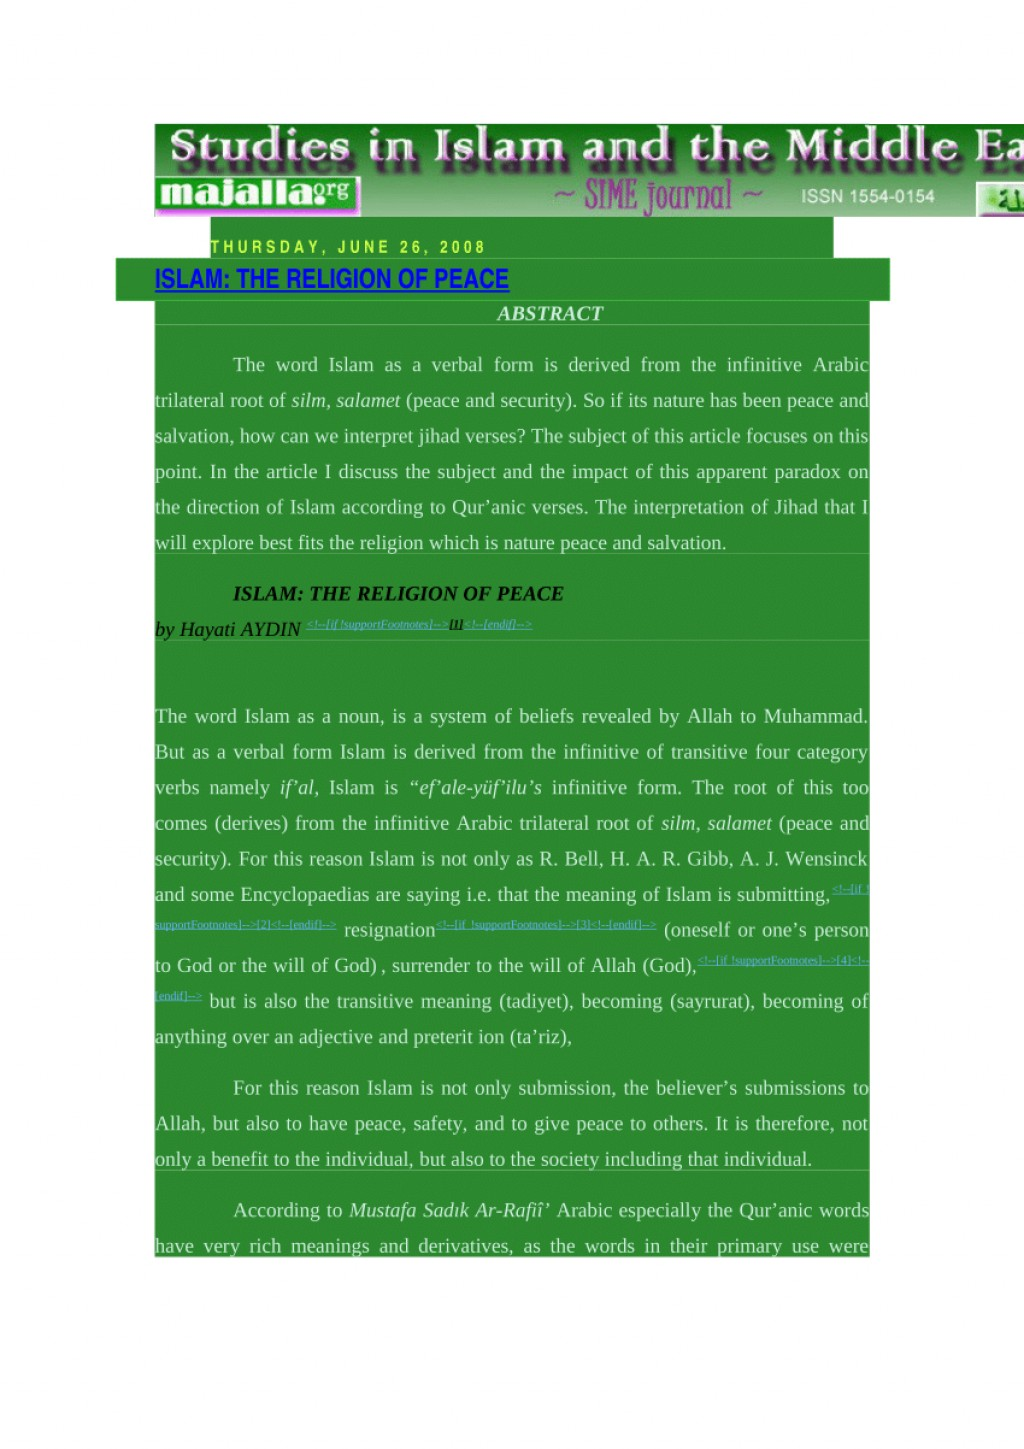 005 Essay Example On Islam Is Religion Of Peace Outstanding A Short Pdf The And Tolerance Large